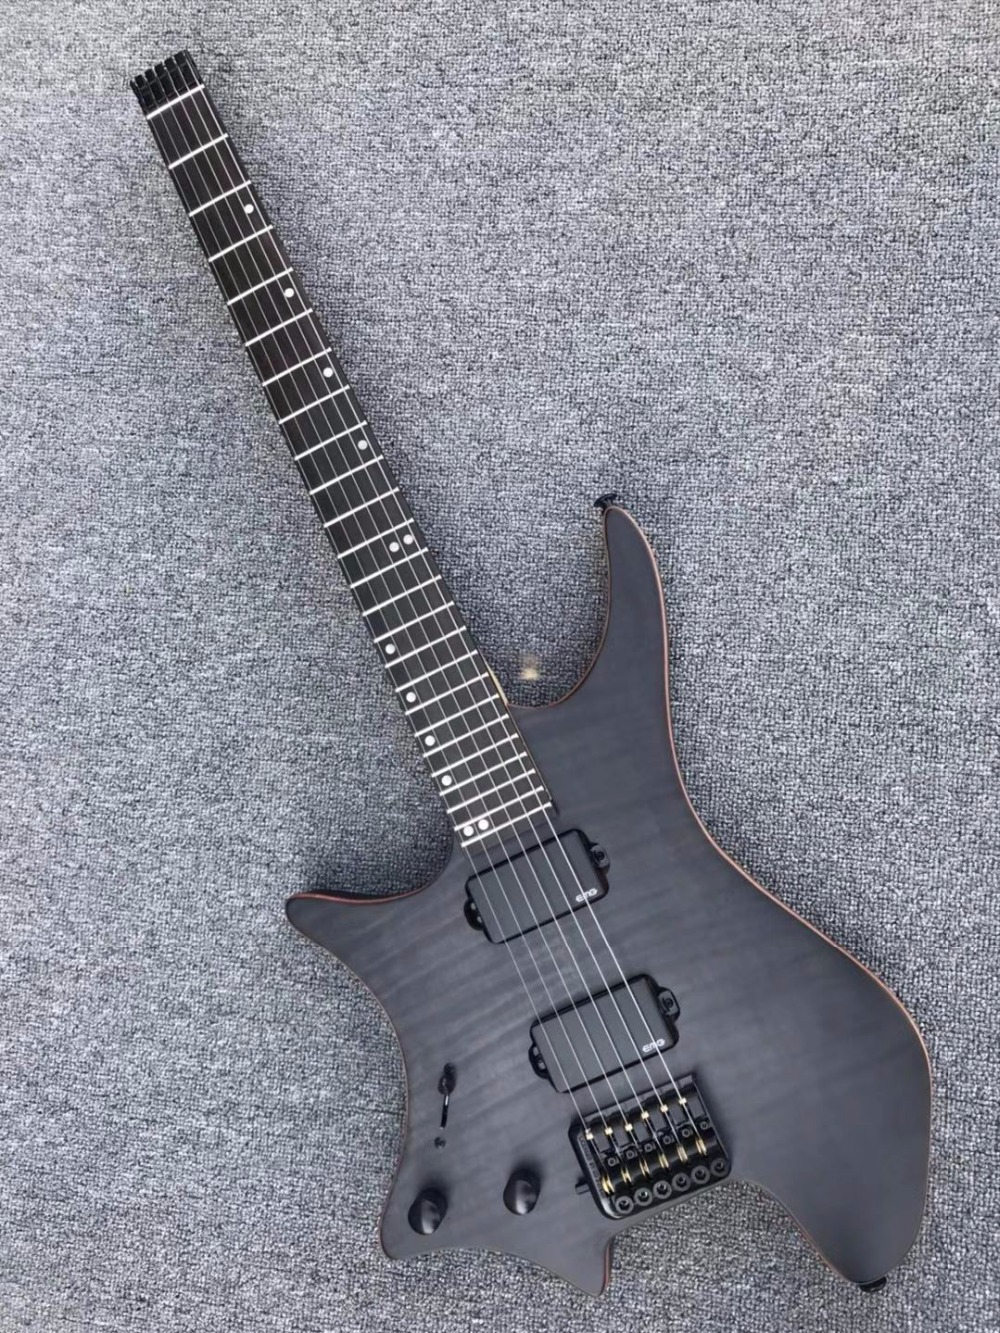 Wholesale New Left Handed Headless Guitar Electric Guitar In Grey Black 180321 other color is available стоимость